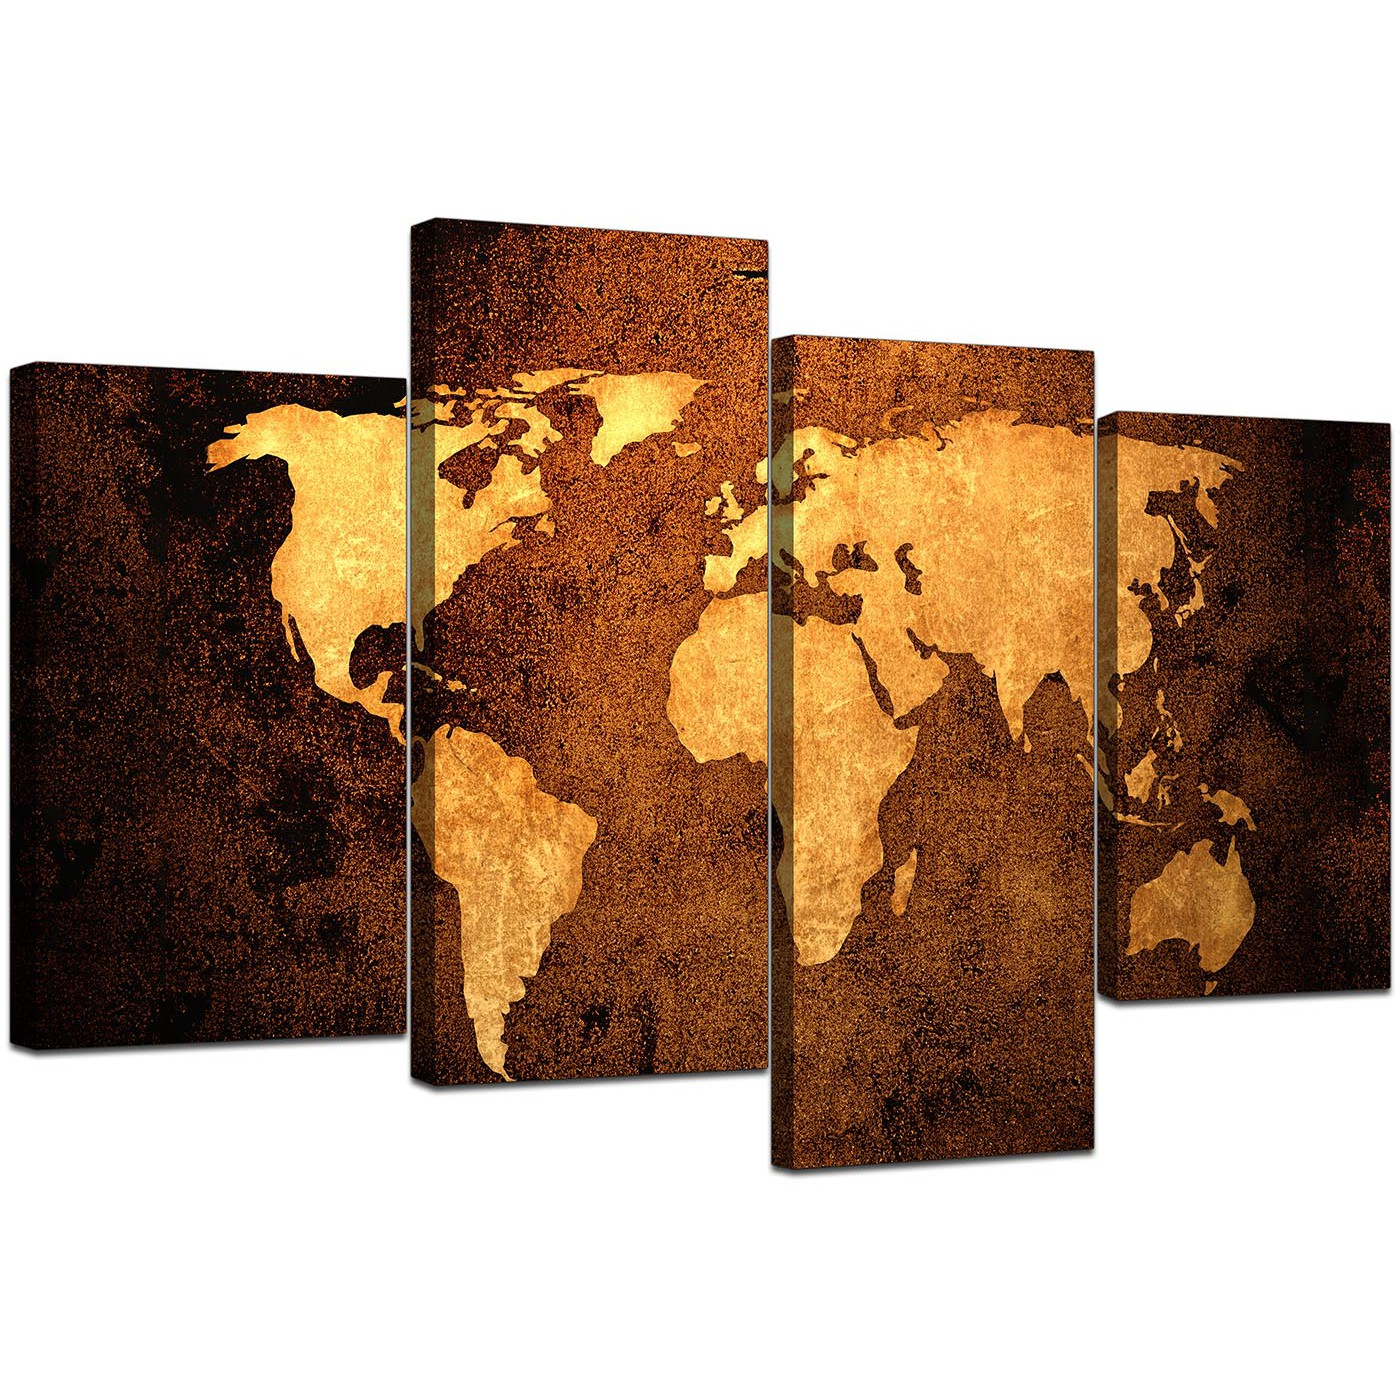 Canvas Pictures Of A World Map In Brown For Your Bedroom